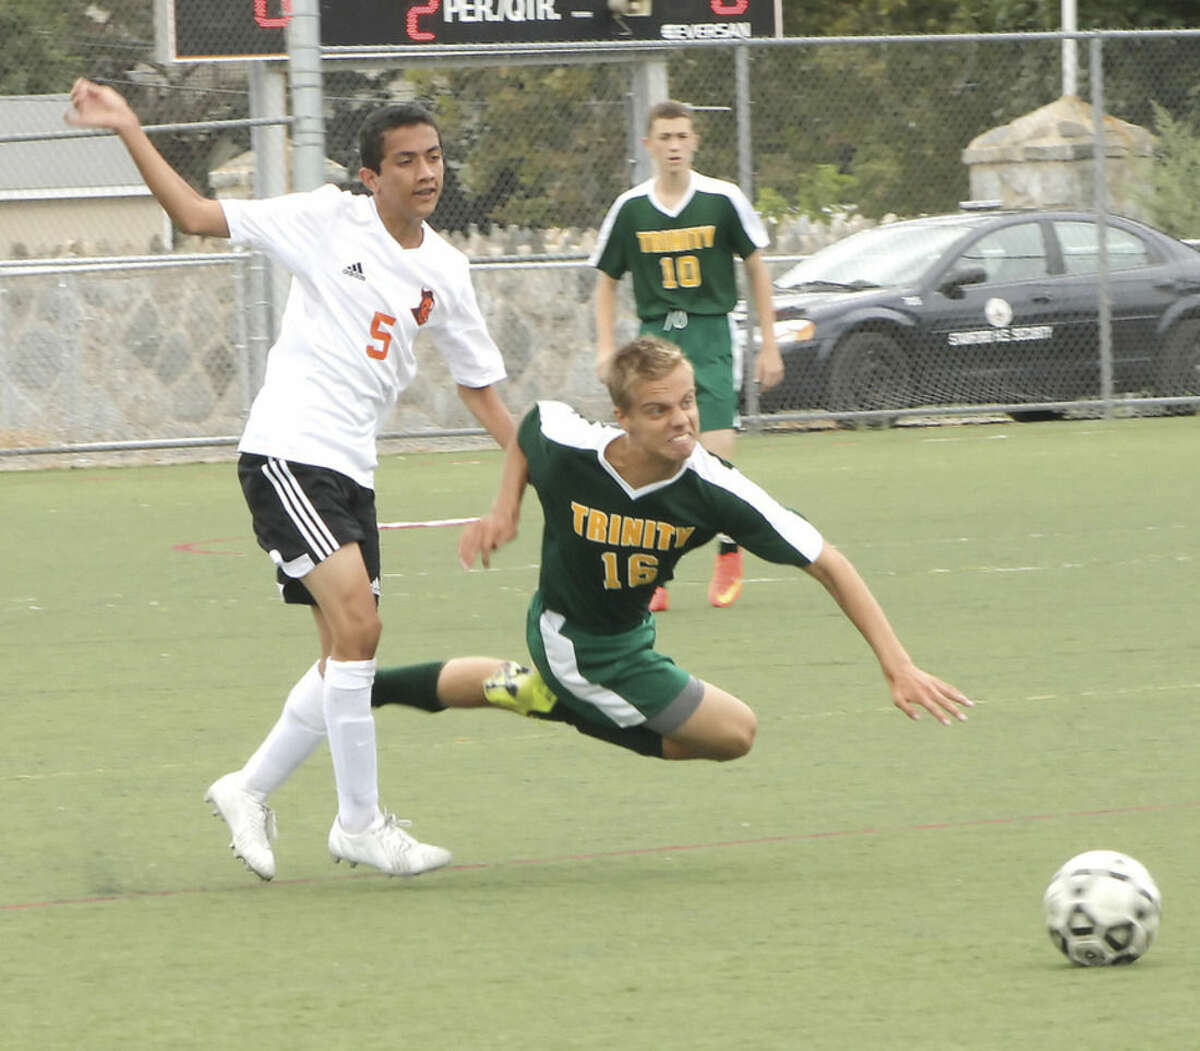 Photo by Joe Ryan Trinity Catholic's Rafal Bierezowiec, right, goes airborne as he and Stamford's Jorge Alvarez chase down a ball during Tuesday's season-opening game in Stamford.